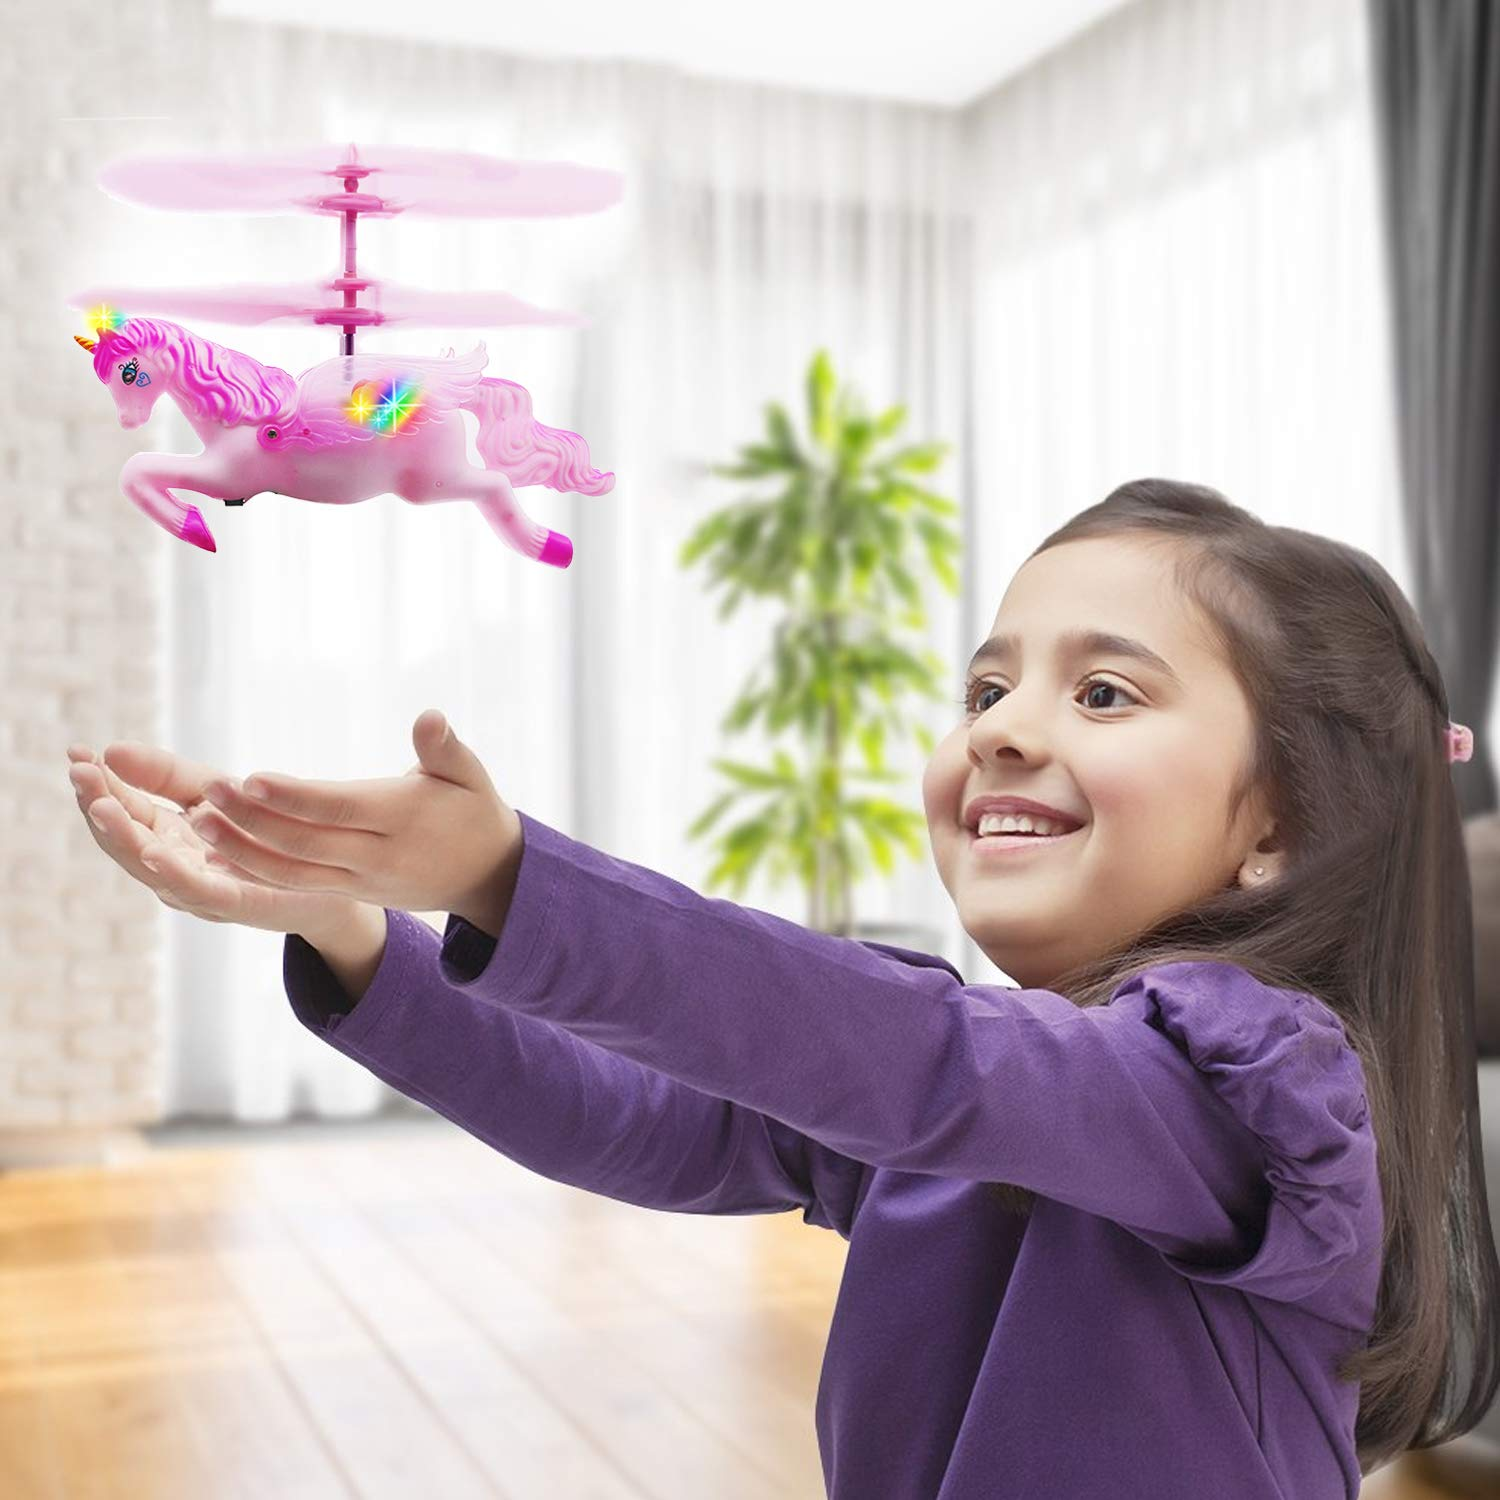 Flying Ball RC Unicorn Toys, Mini RC Flying Helicopter Unicorn Toy Gifts Hand Control Drones for Kids Boys Girls Flying Fairy Unicorn Doll Hovering Aircraft Outdoor Flying Toys Games Birthday Gift by Synmila (Image #7)